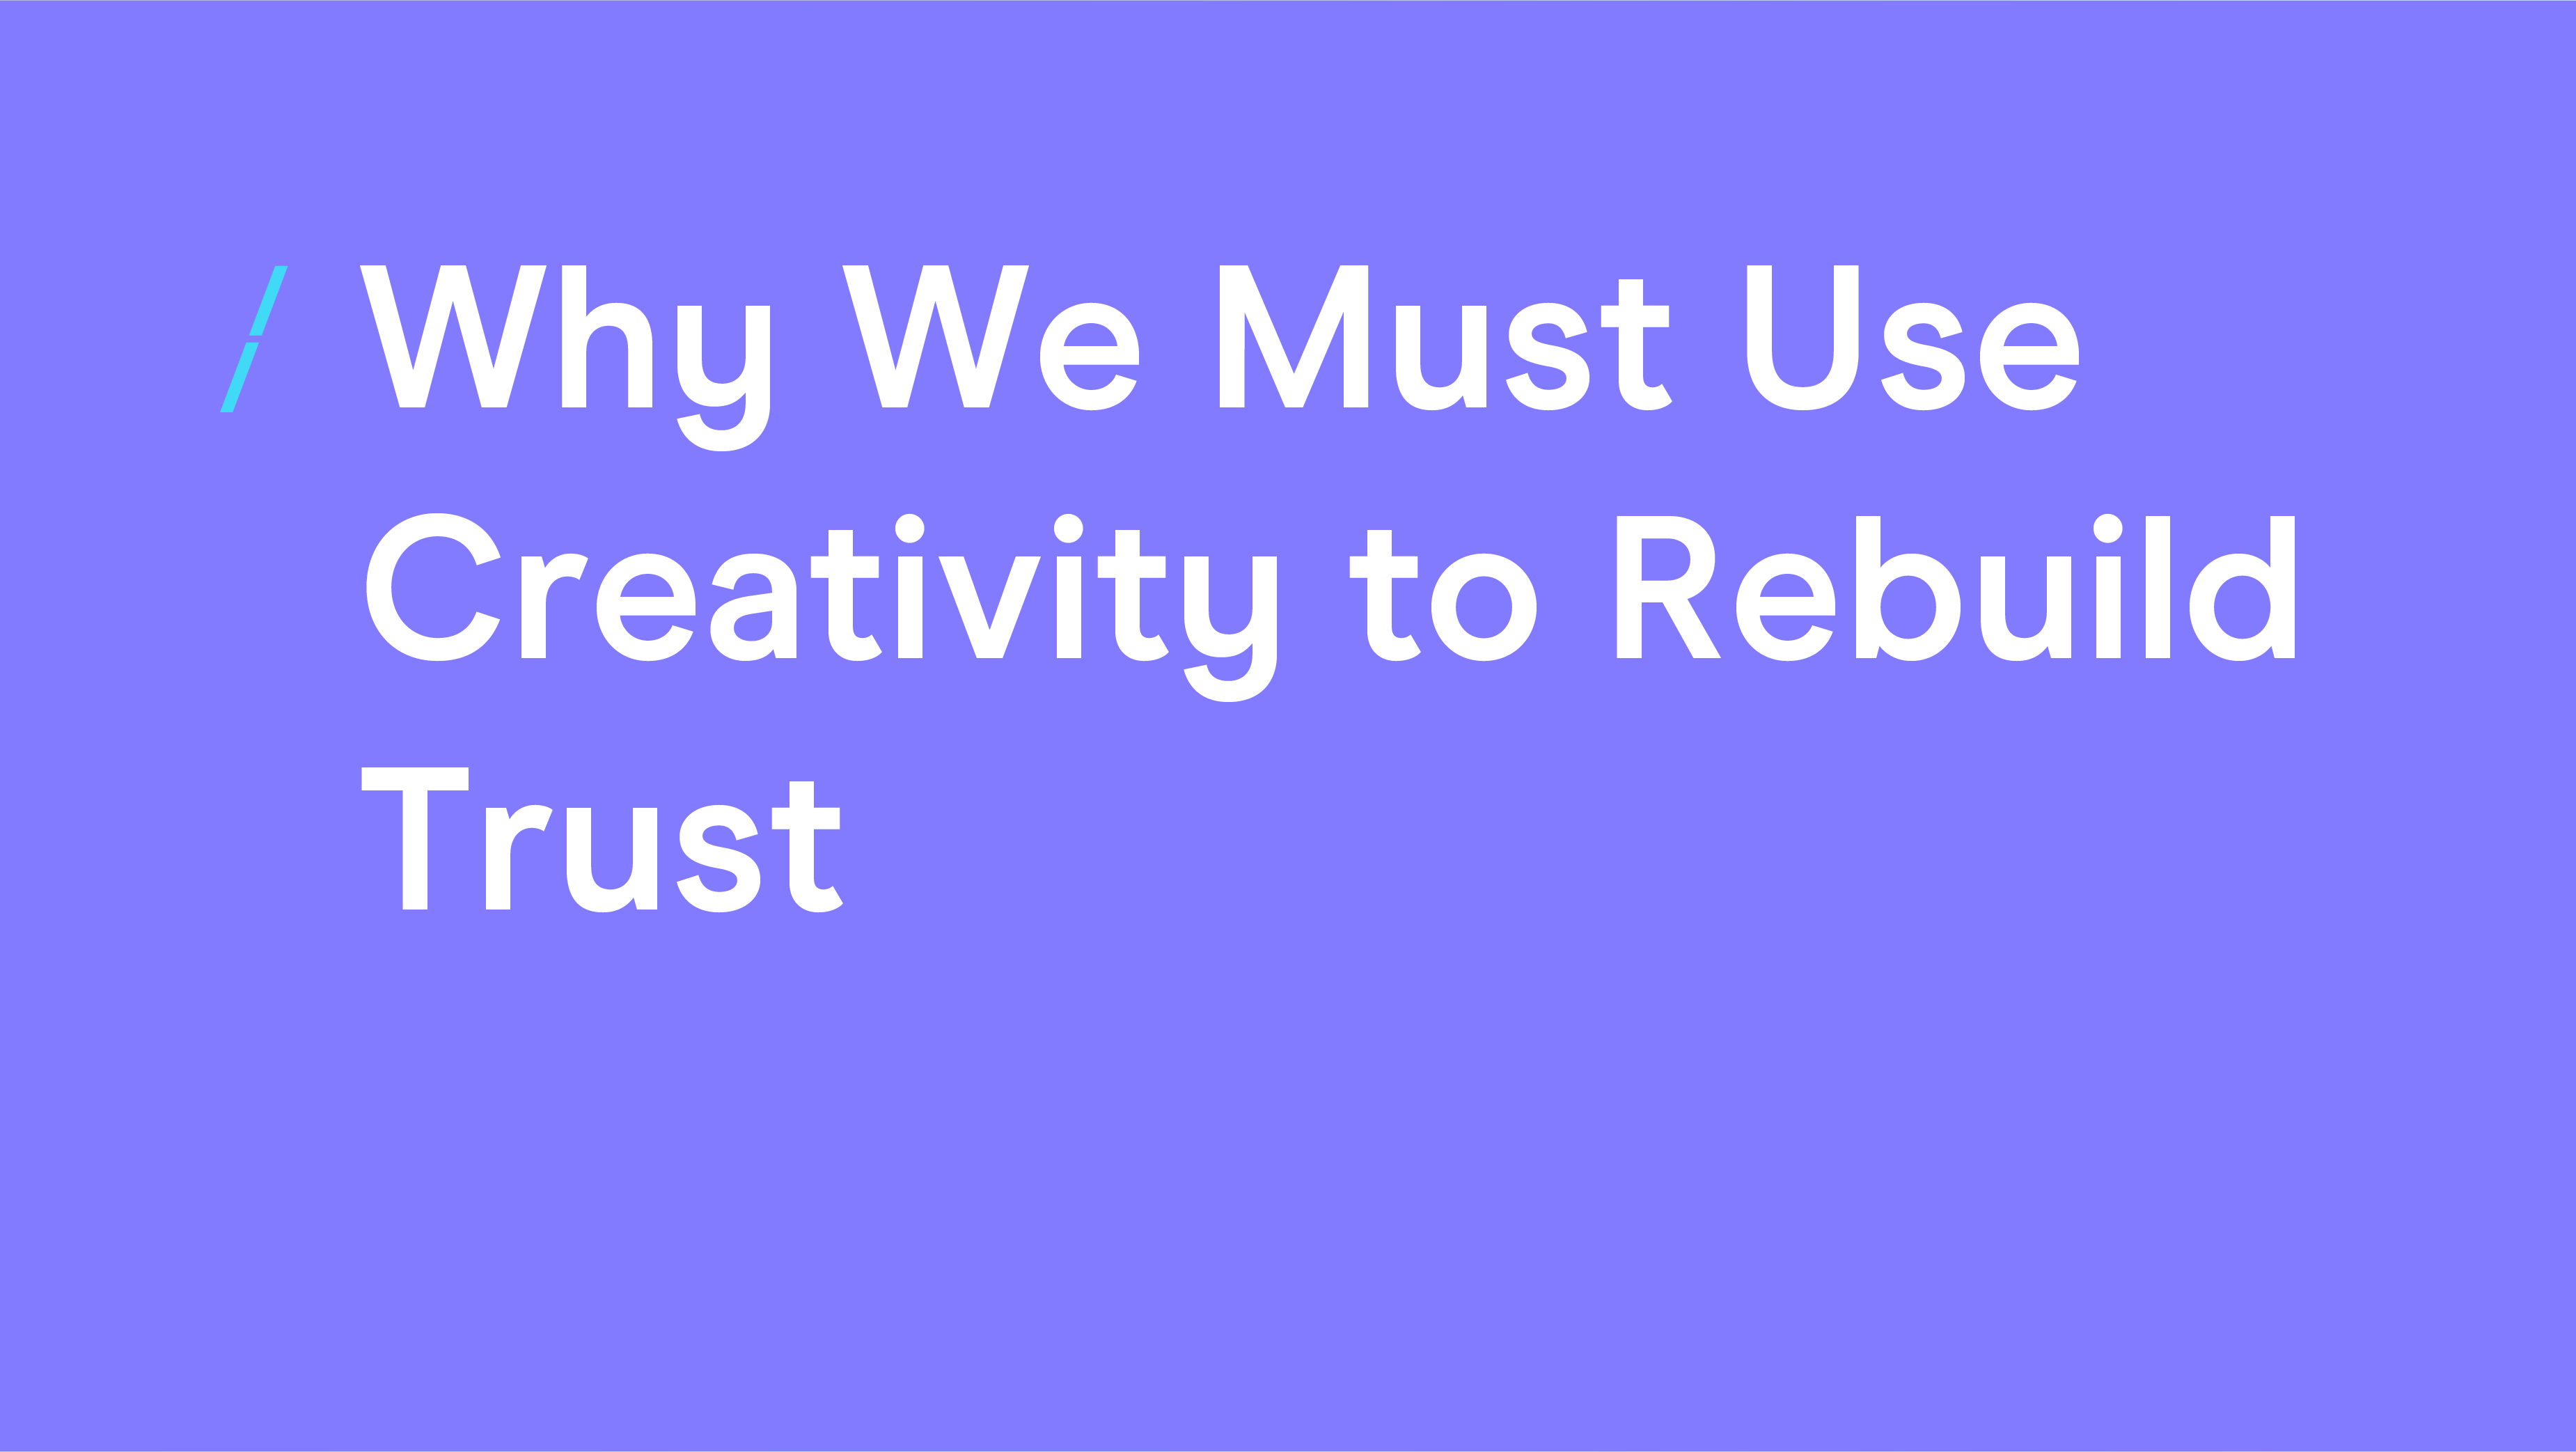 Great British Creativity-Why We Must Use Creativity to Rebuild Trust_General articles.png